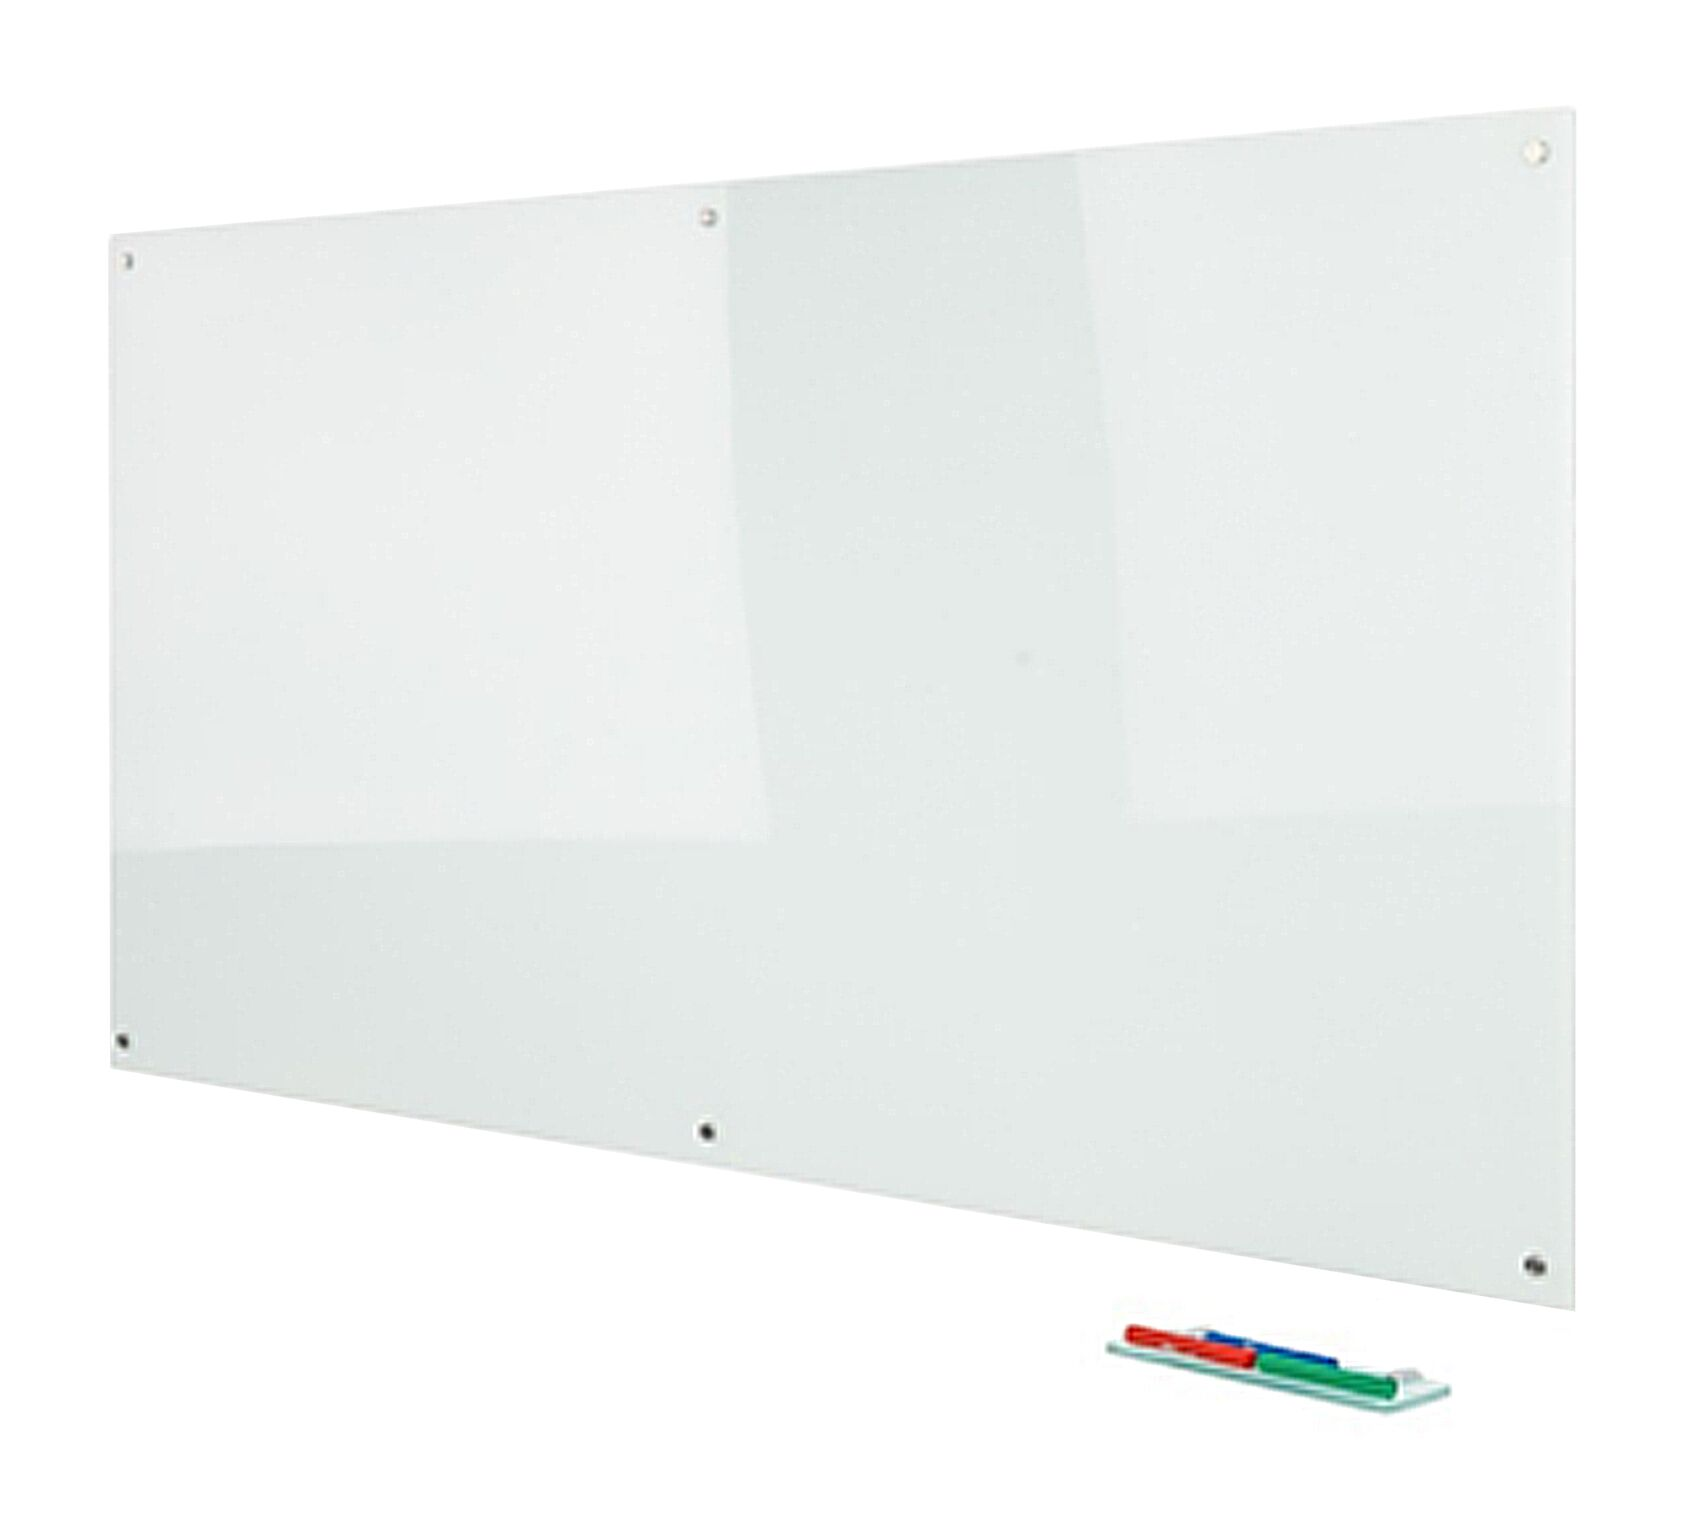 halo white magnetic glass whiteboard uci. Black Bedroom Furniture Sets. Home Design Ideas